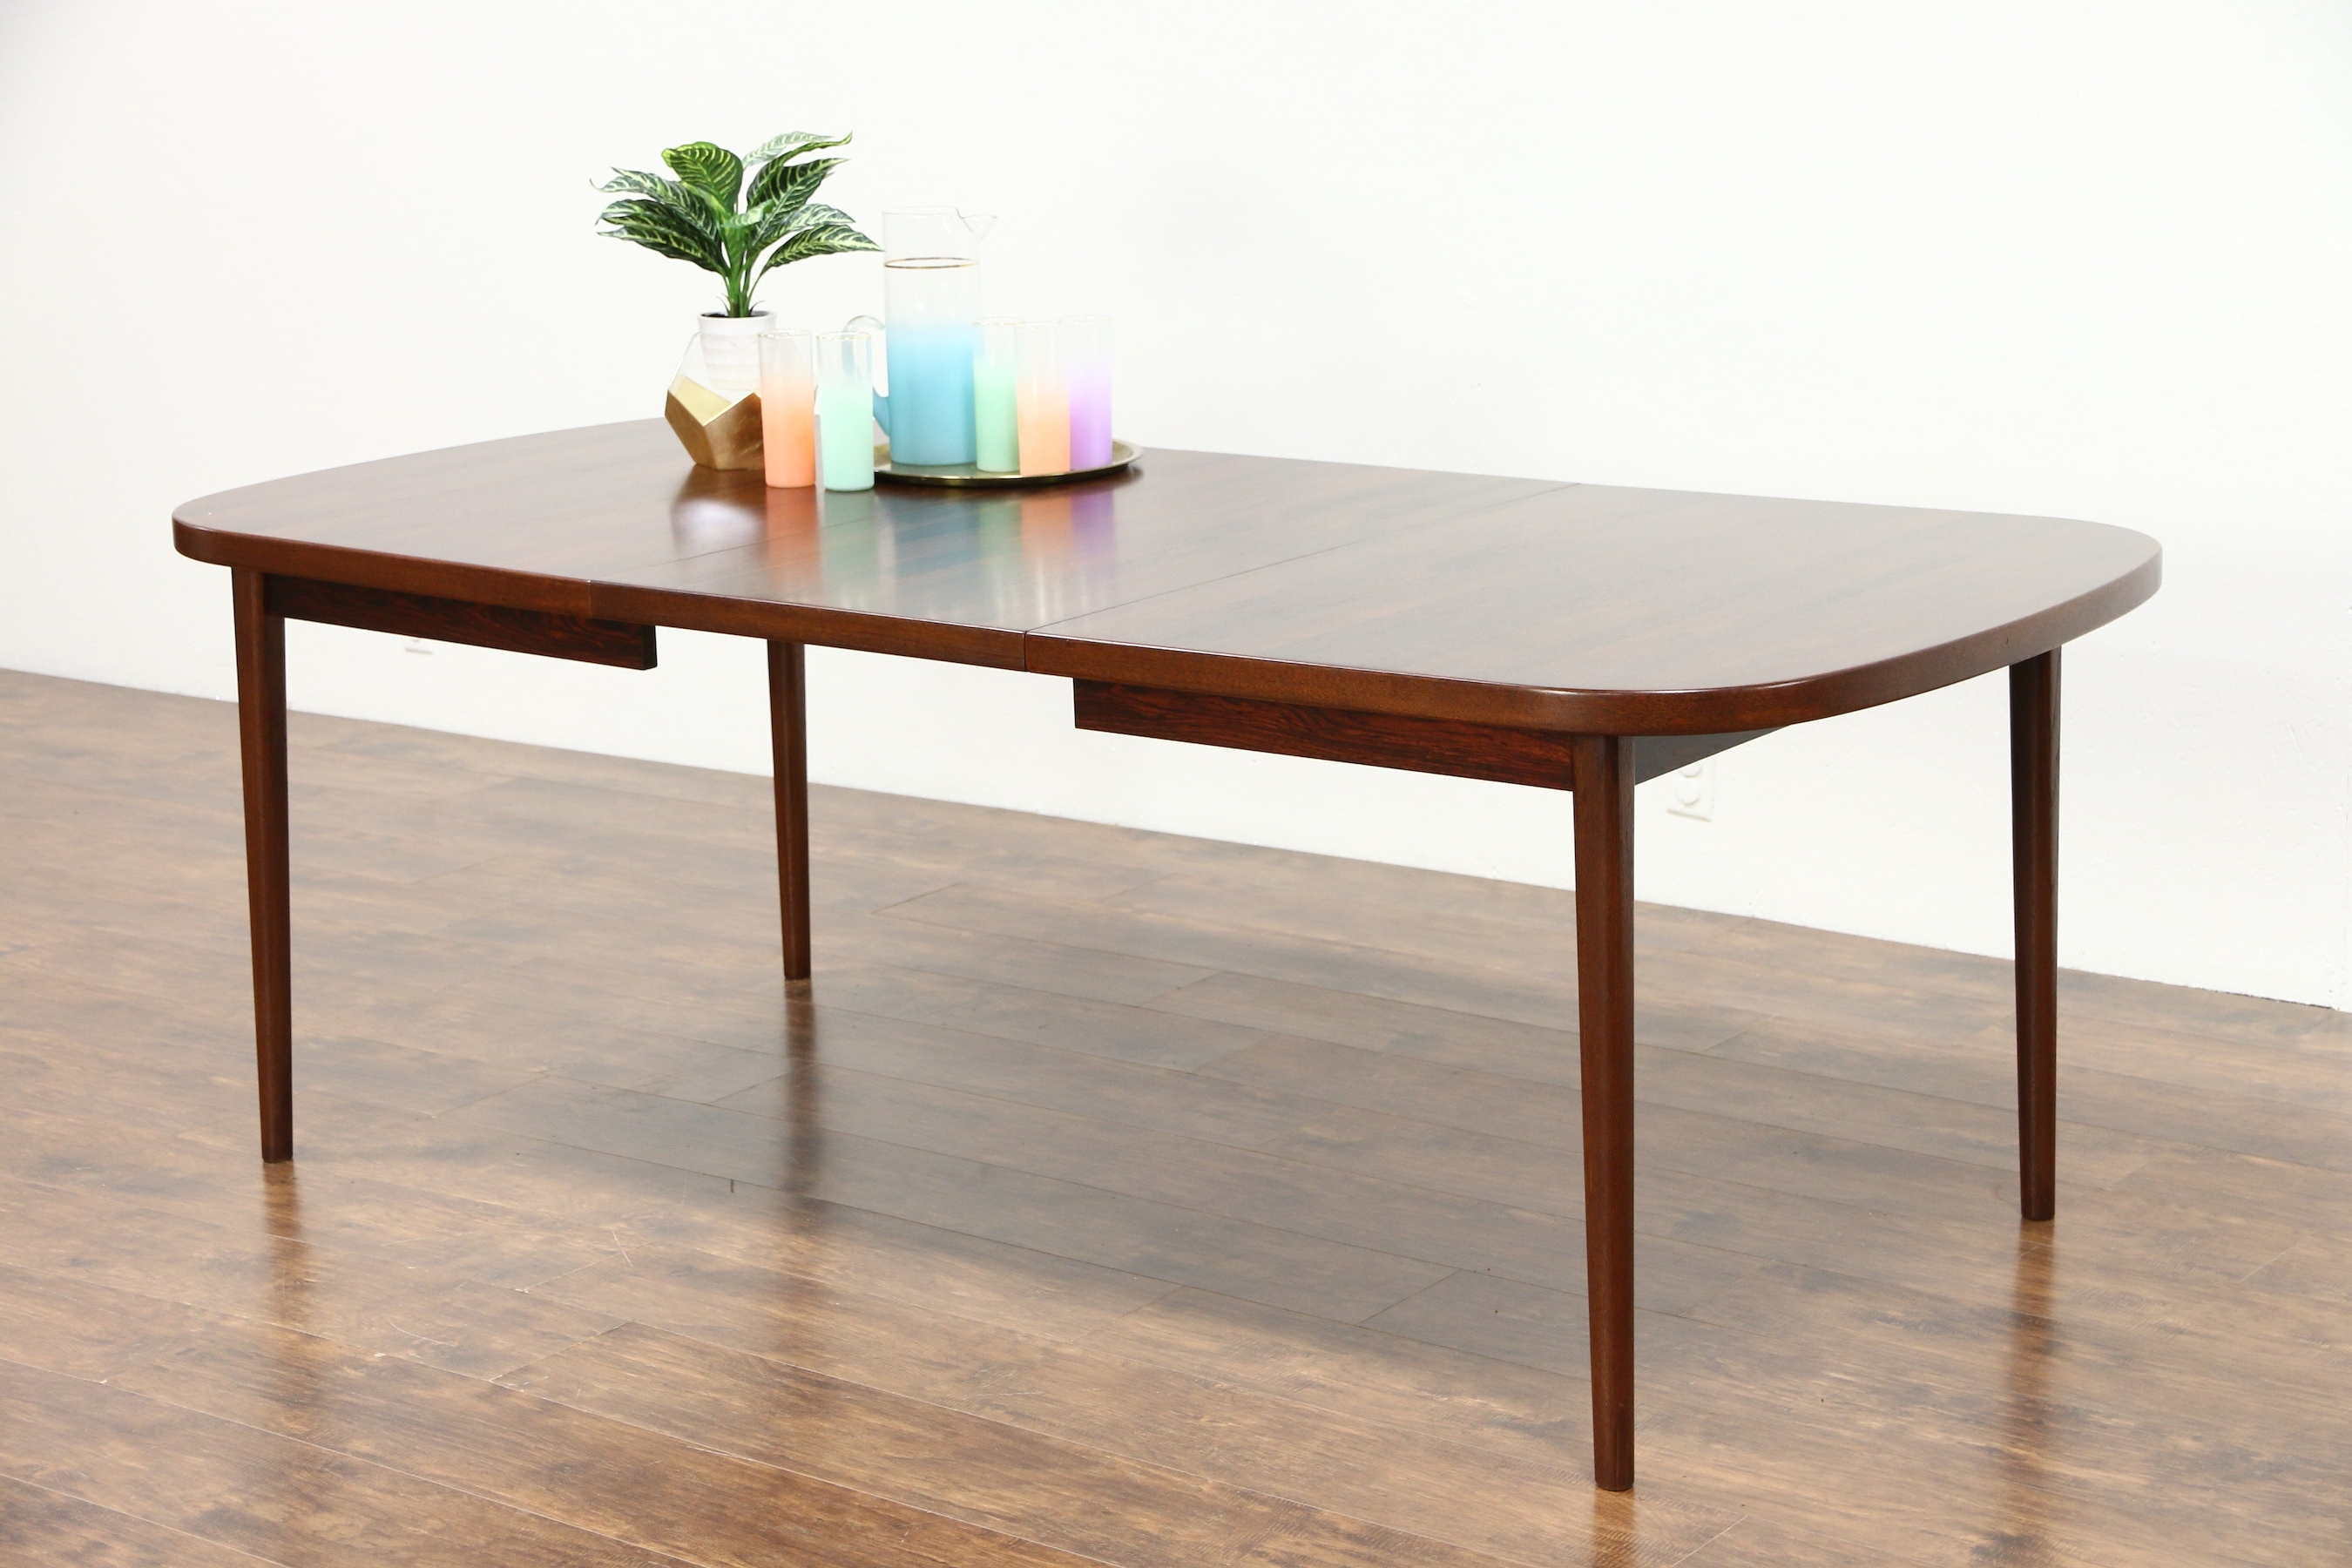 Sold – Midcentury Danish Modern Rosewood 1960's Vintage Dining Table Throughout 2017 Danish Dining Tables (View 22 of 25)